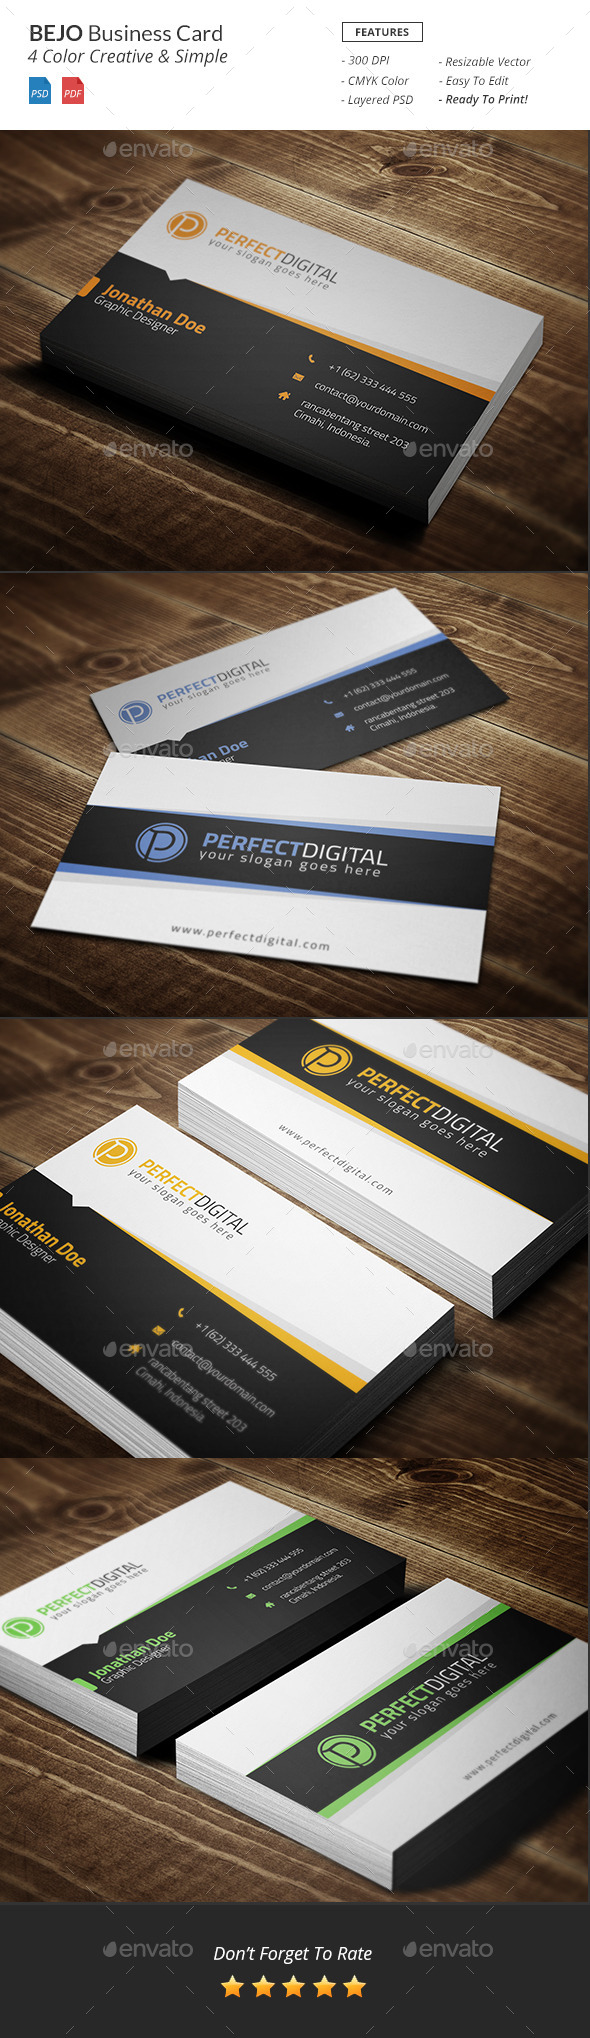 GraphicRiver Bejo Creative Business Card 10933949